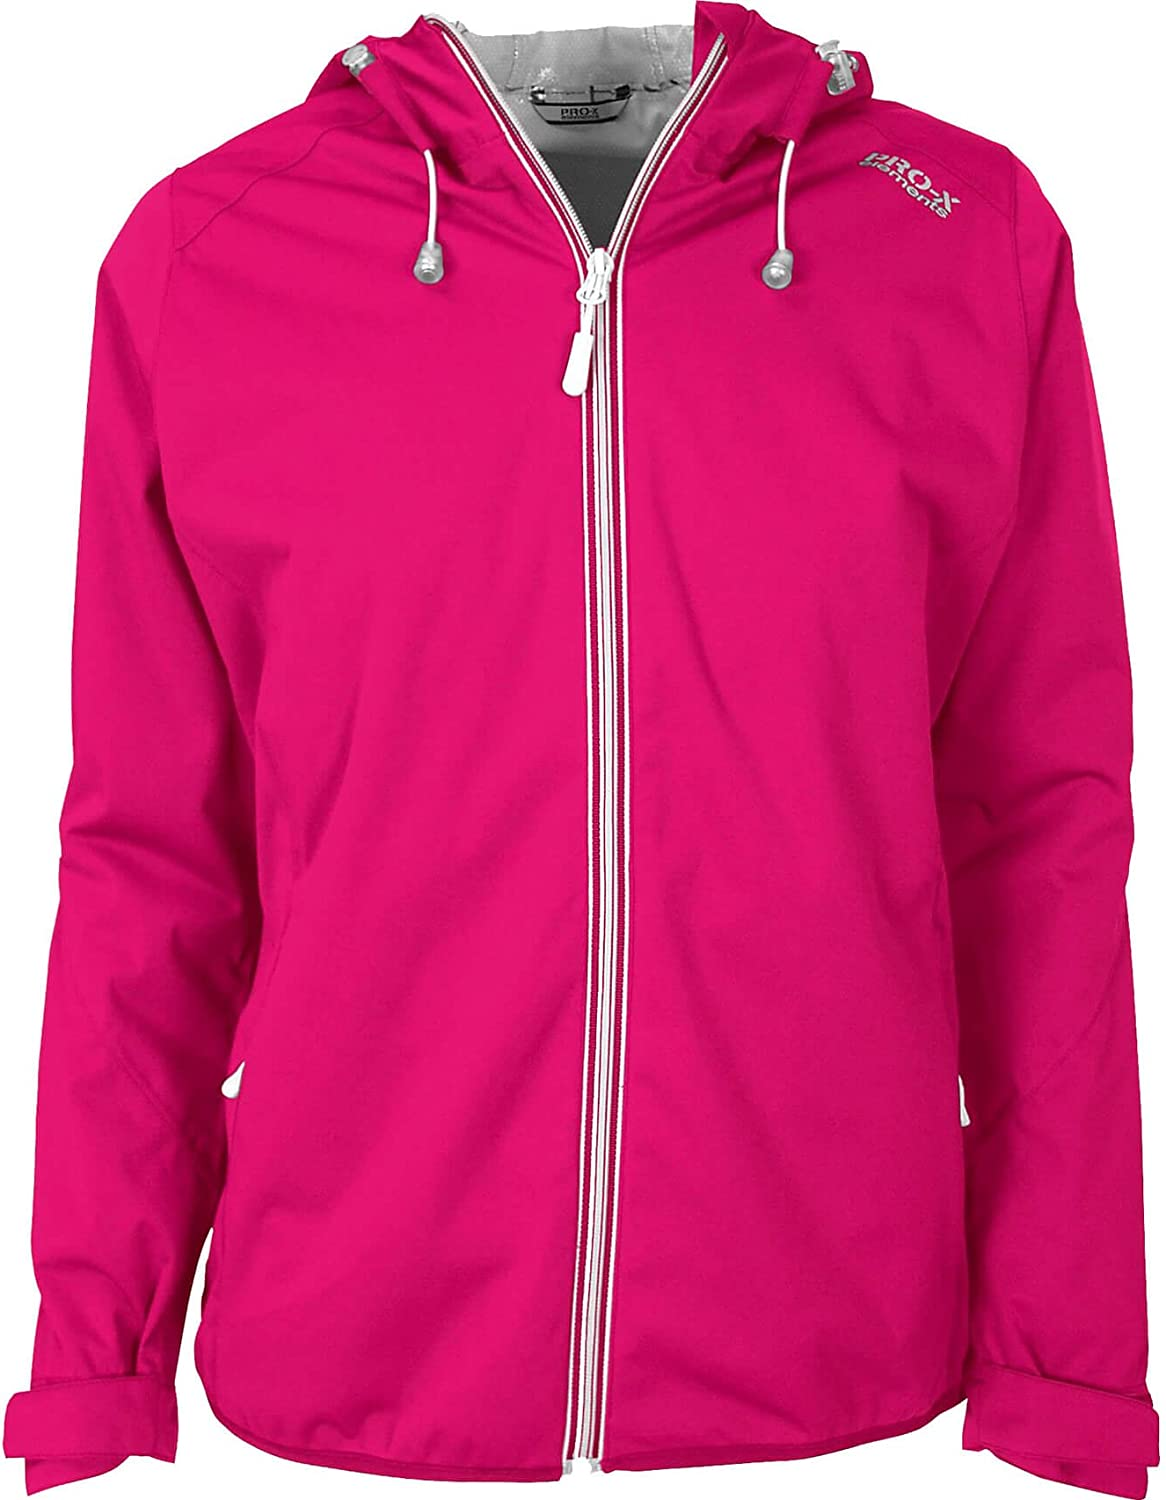 PRO-X elements Damen Davina Jacke